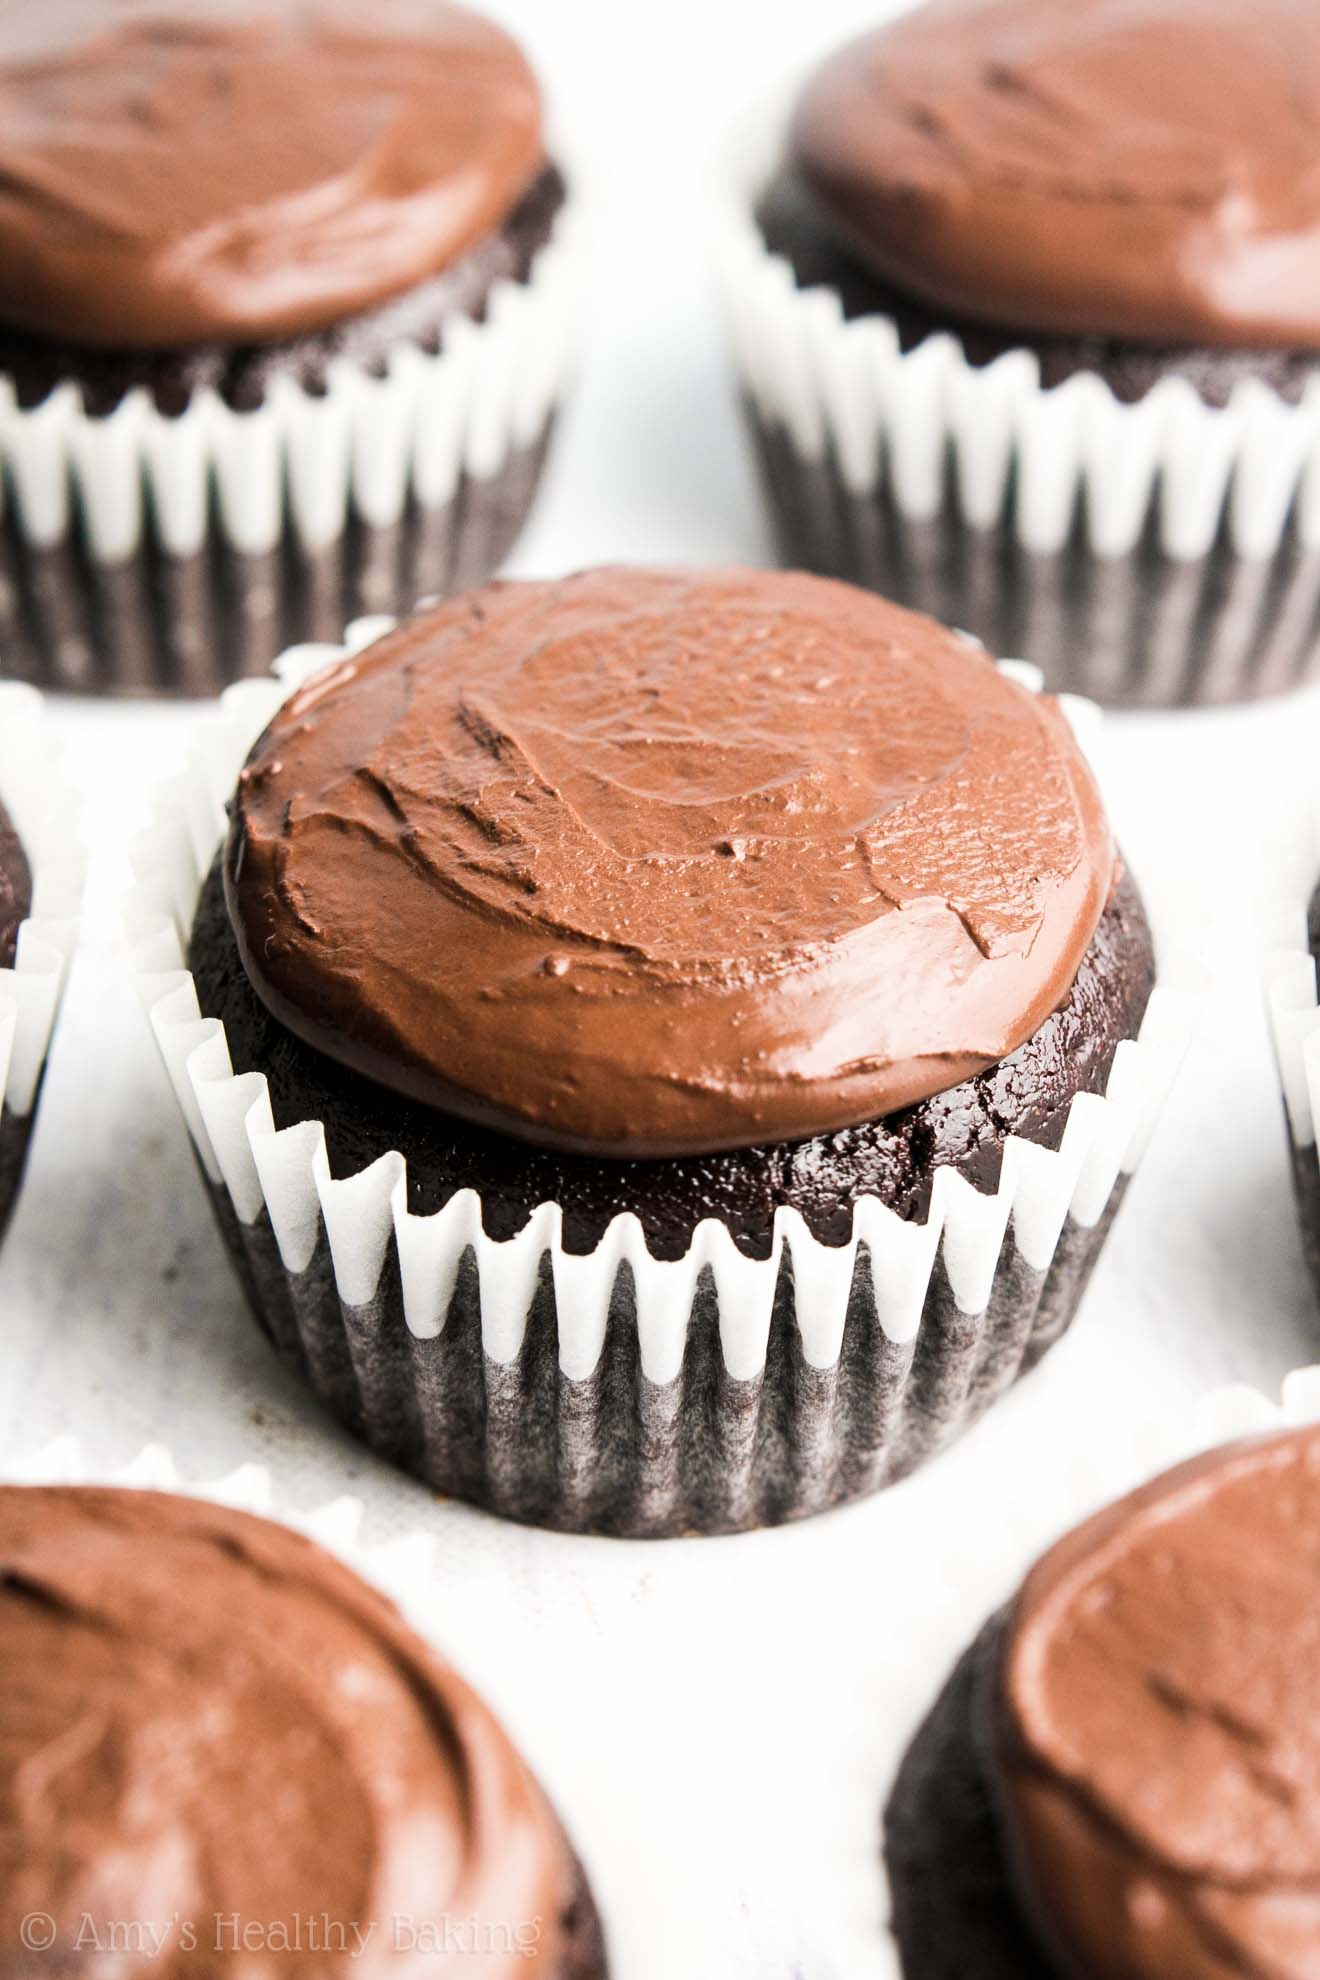 The Ultimate Healthy Chocolate Cupcakes Just 135 Calories But These Skinny Don